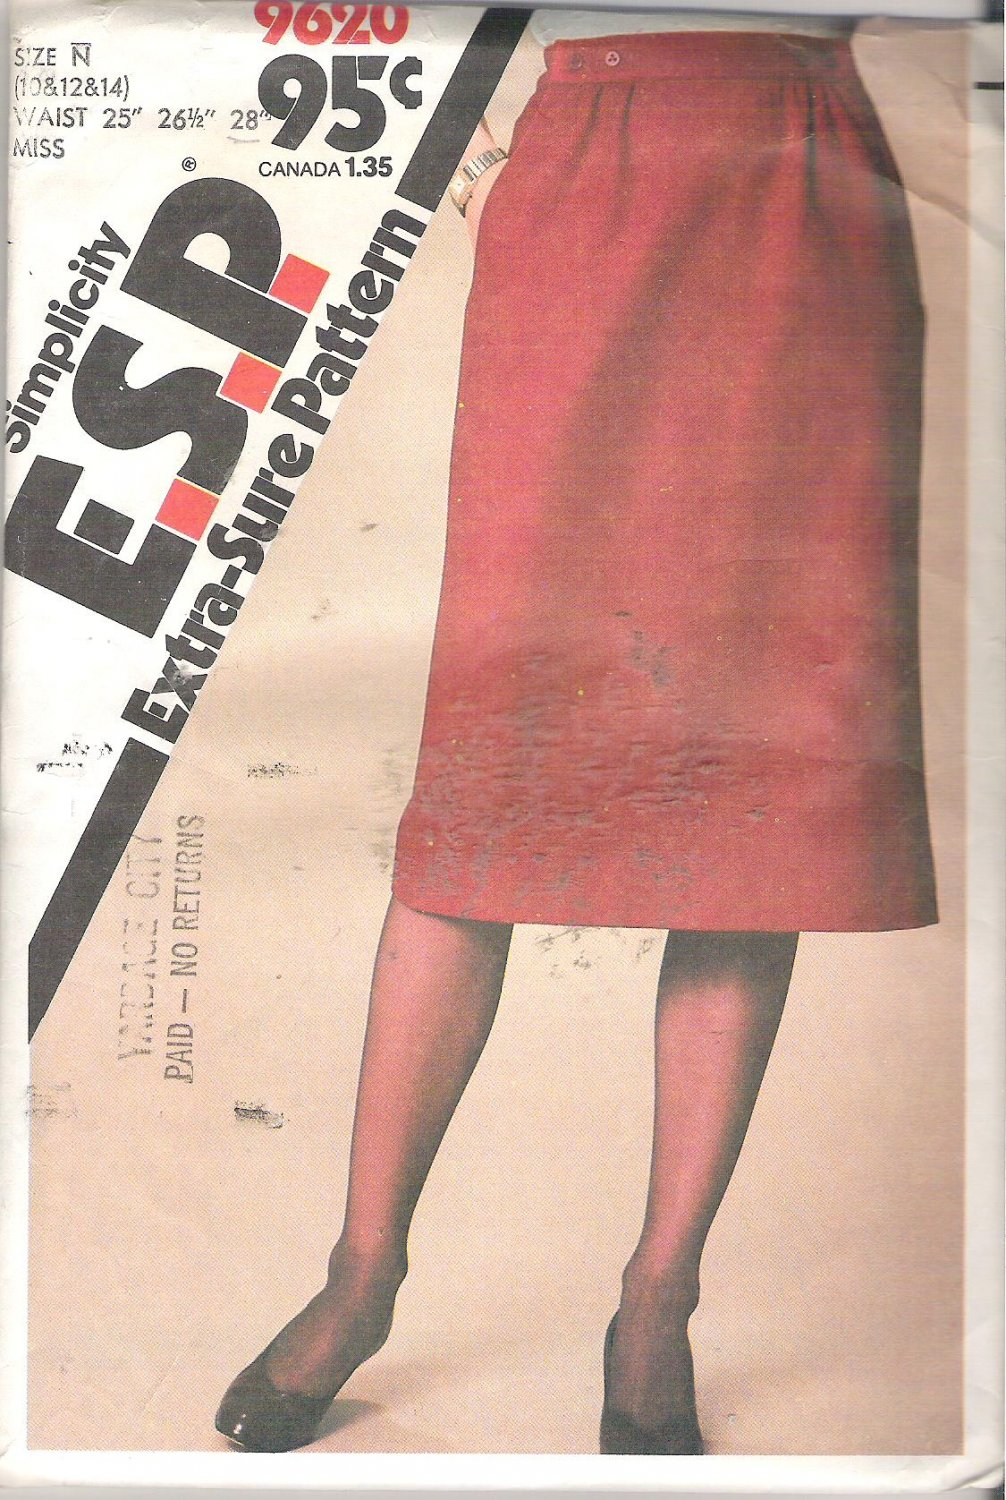 Simplicity 9620 (1980) Pattern Extra-Sure Pattern Straight Skirt  Size 10-14 Uncut